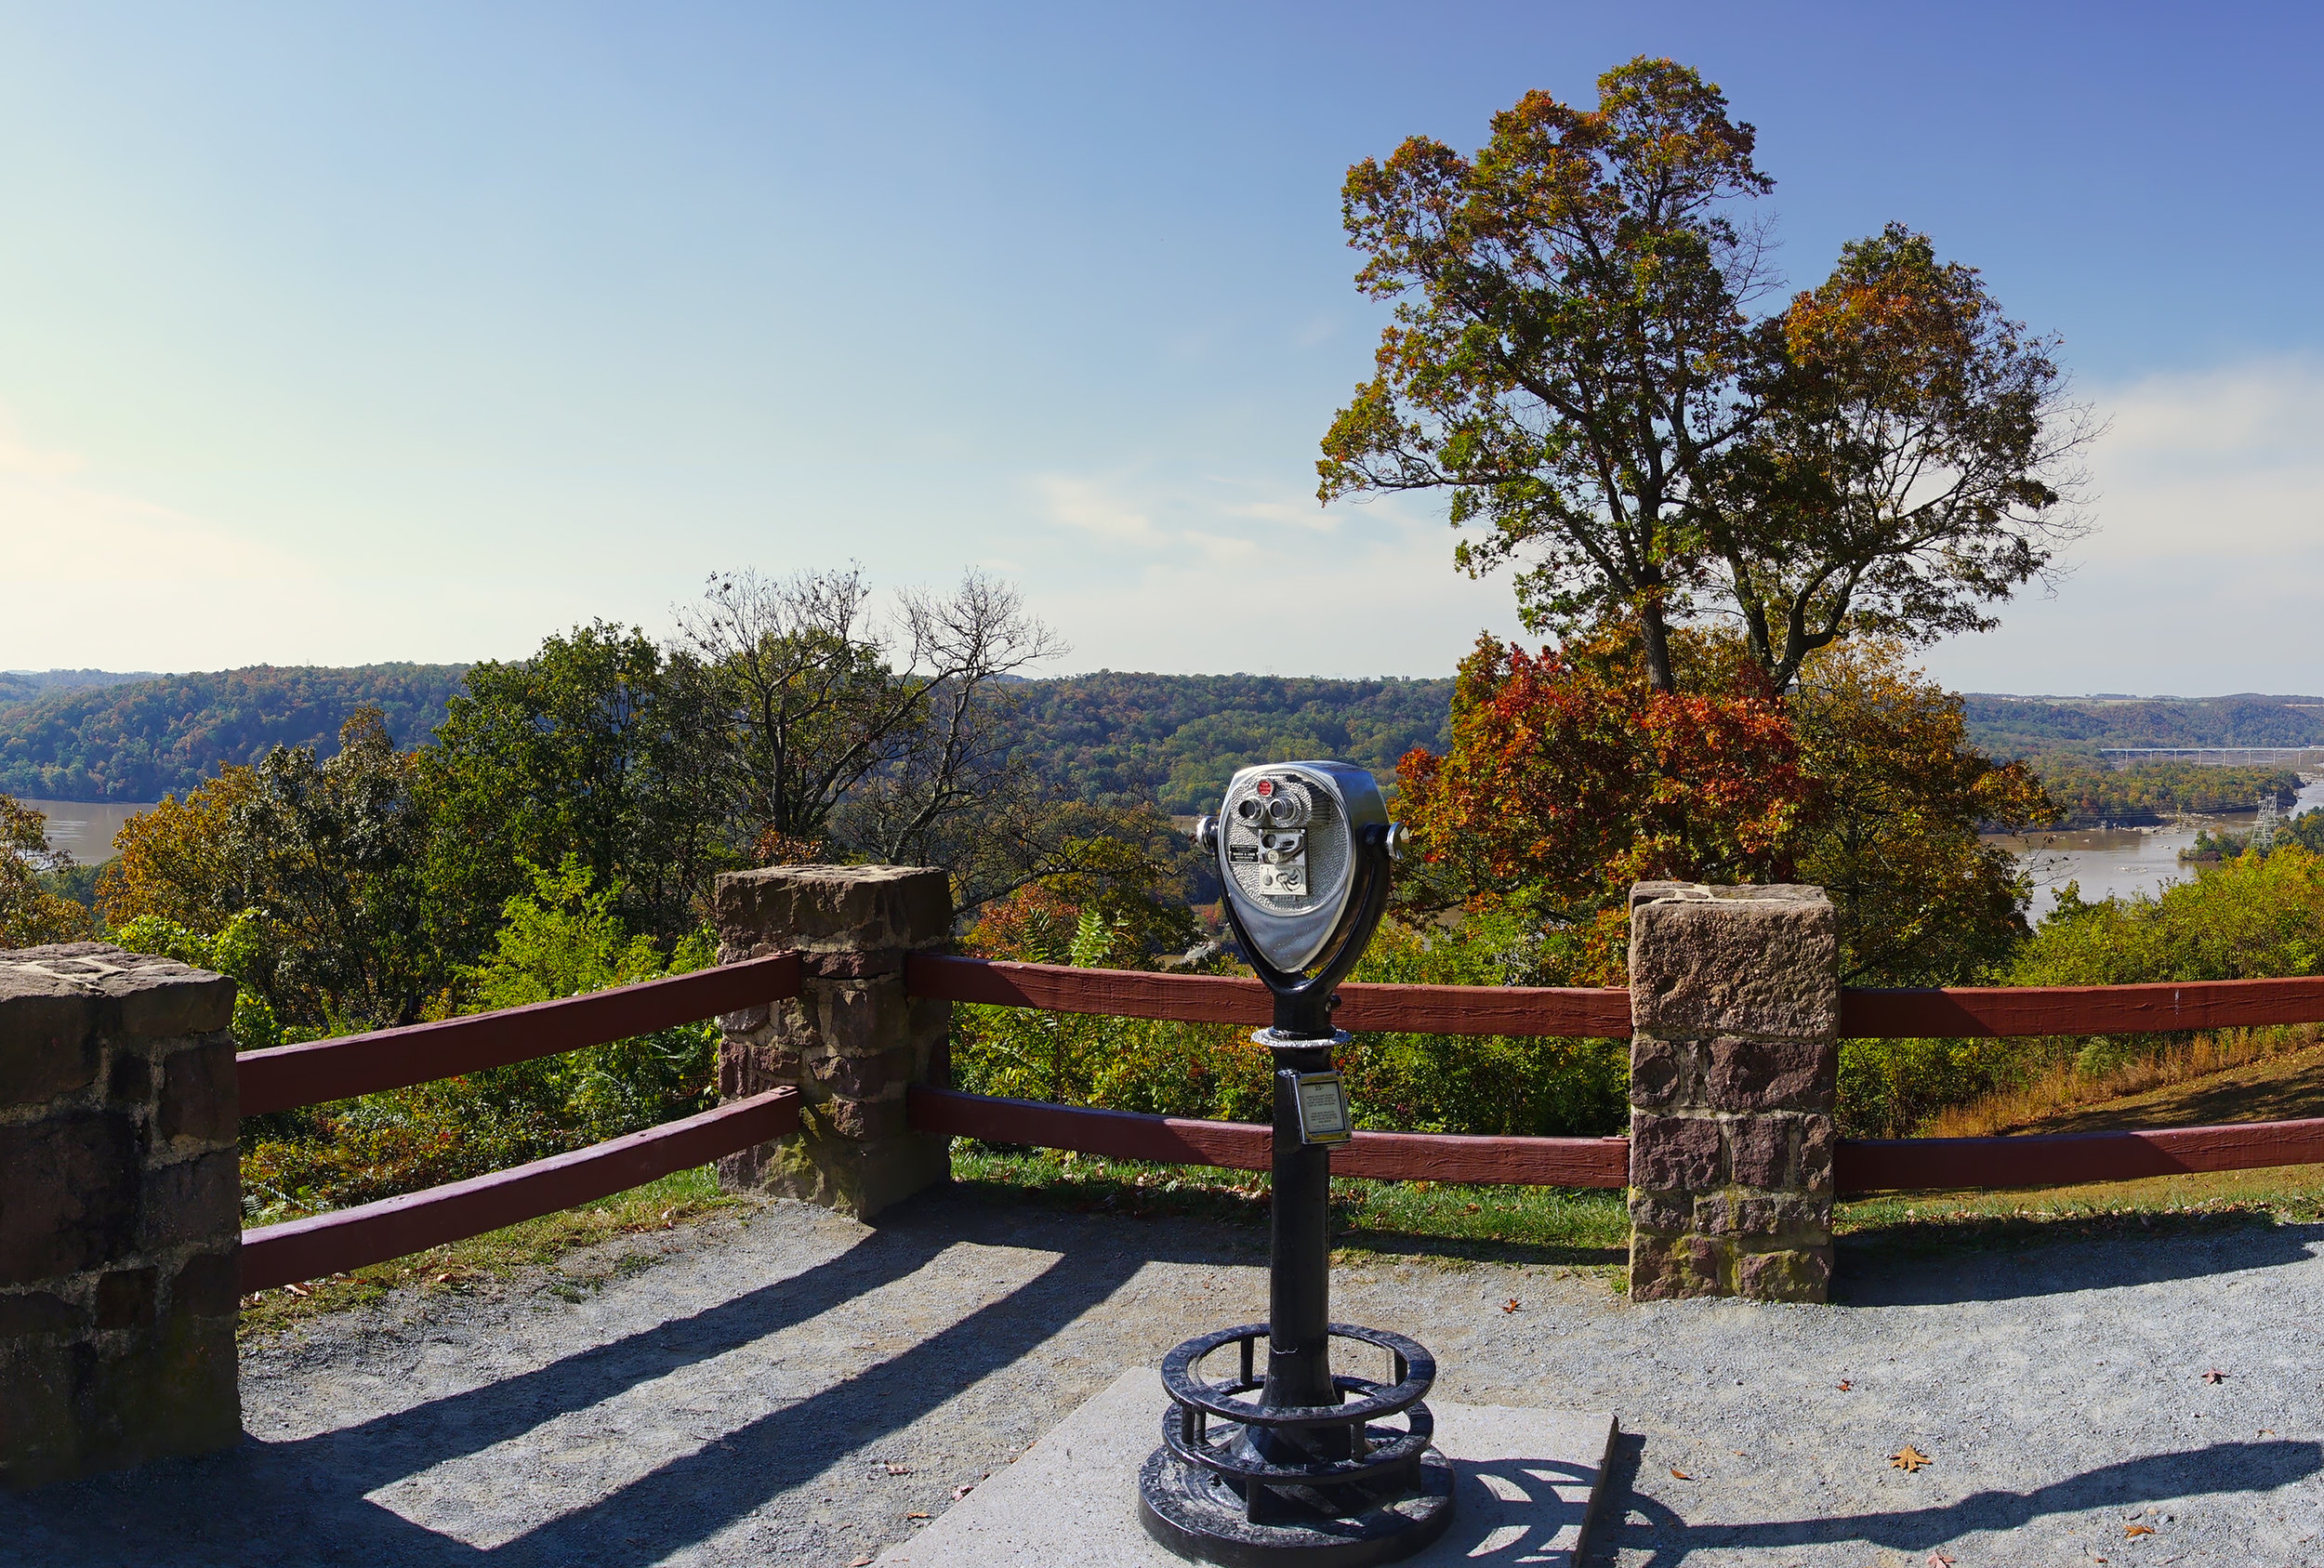 Panoramic view towards the Northwest from the Overlook at the Susquehannock State Park.